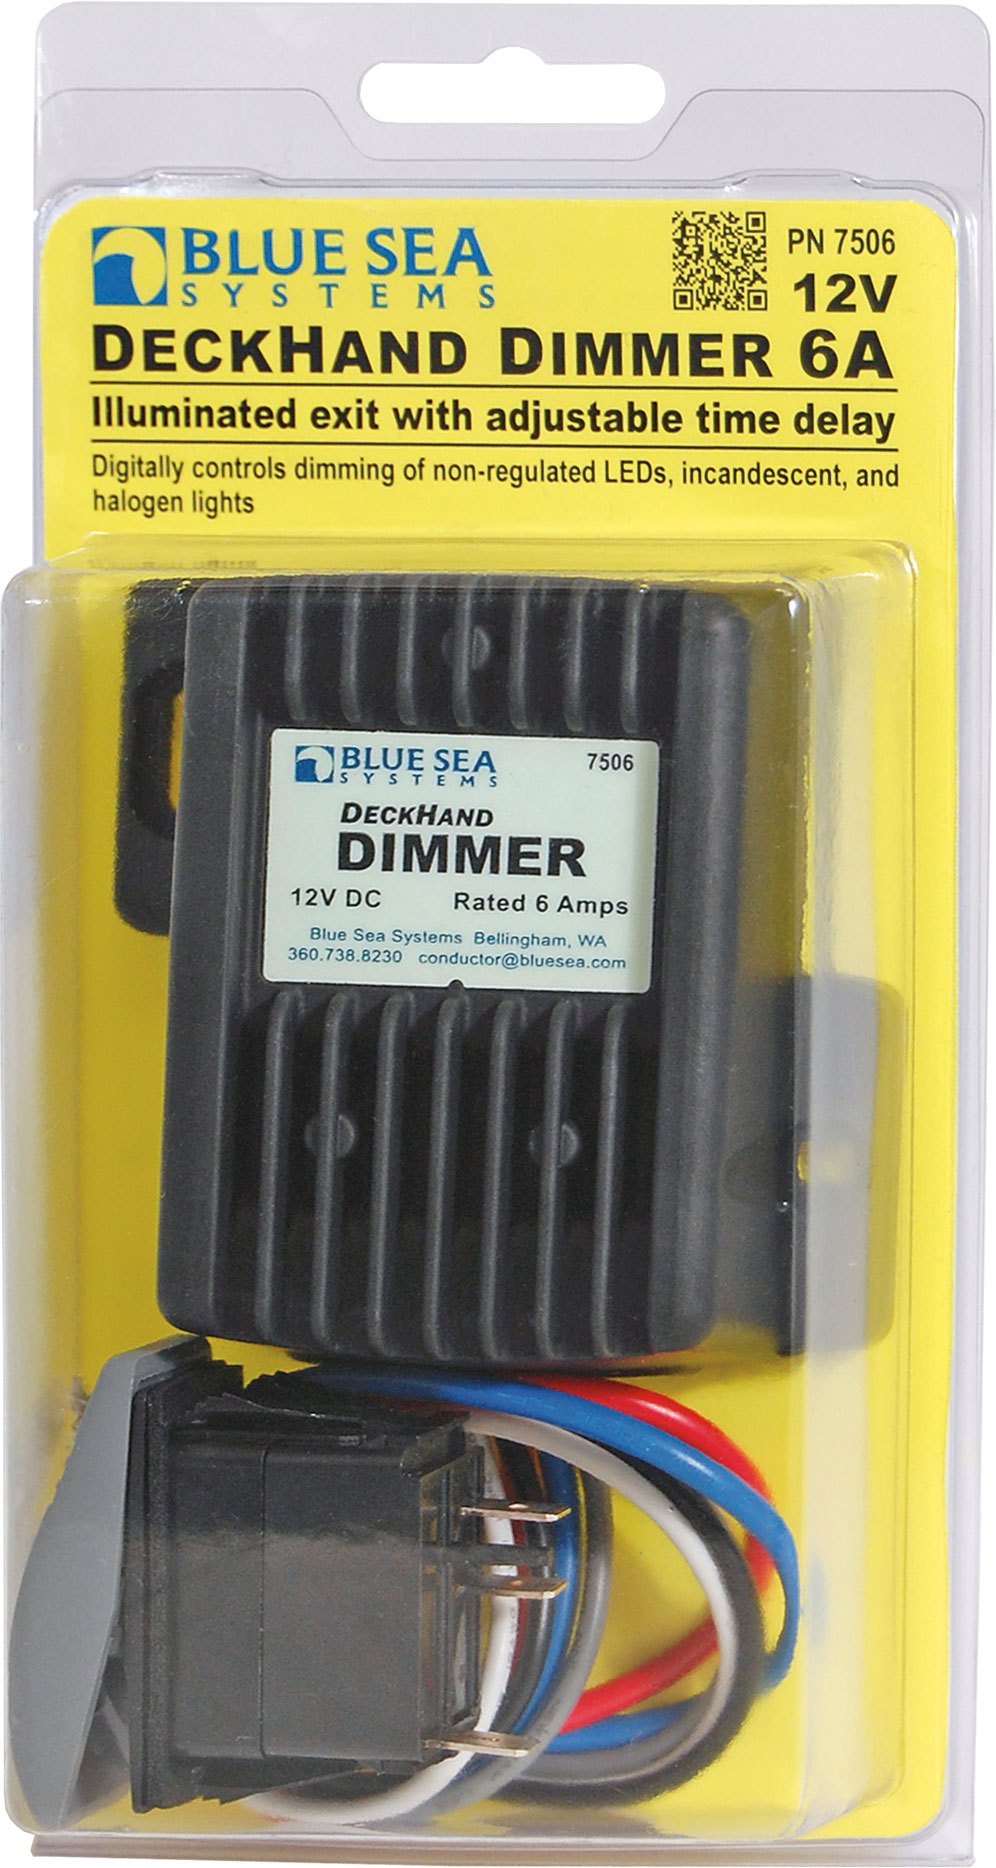 Deckhand Dimmer 12v Dc 6a Blue Sea Systems Digital Signage Wiring Diagram Dimmers